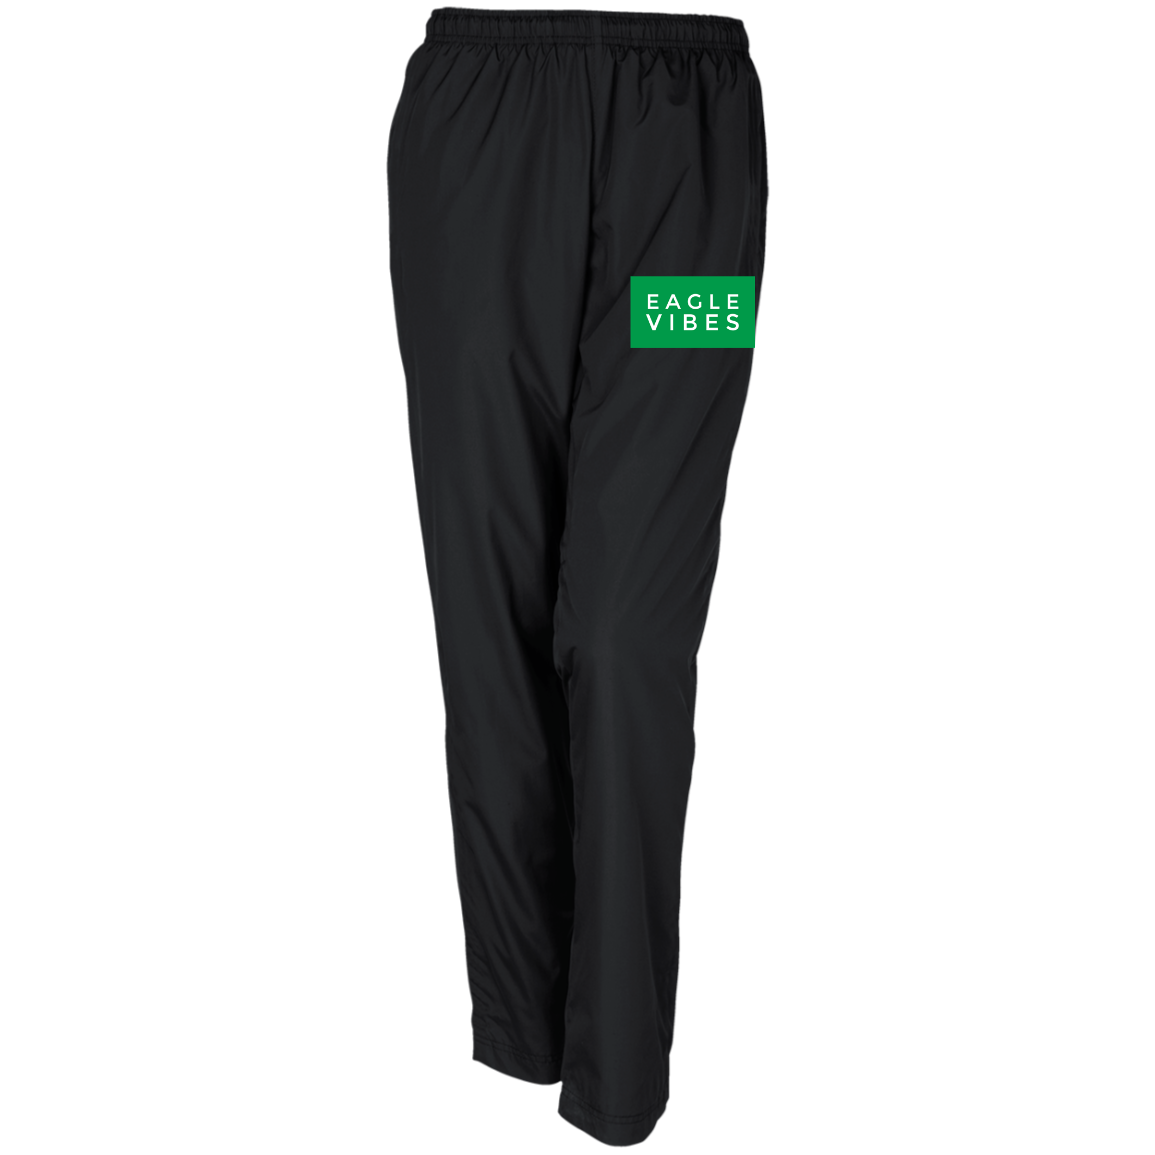 0316ca4bb6 Eagle Vibes Ladies' Warm-Up Track Pant